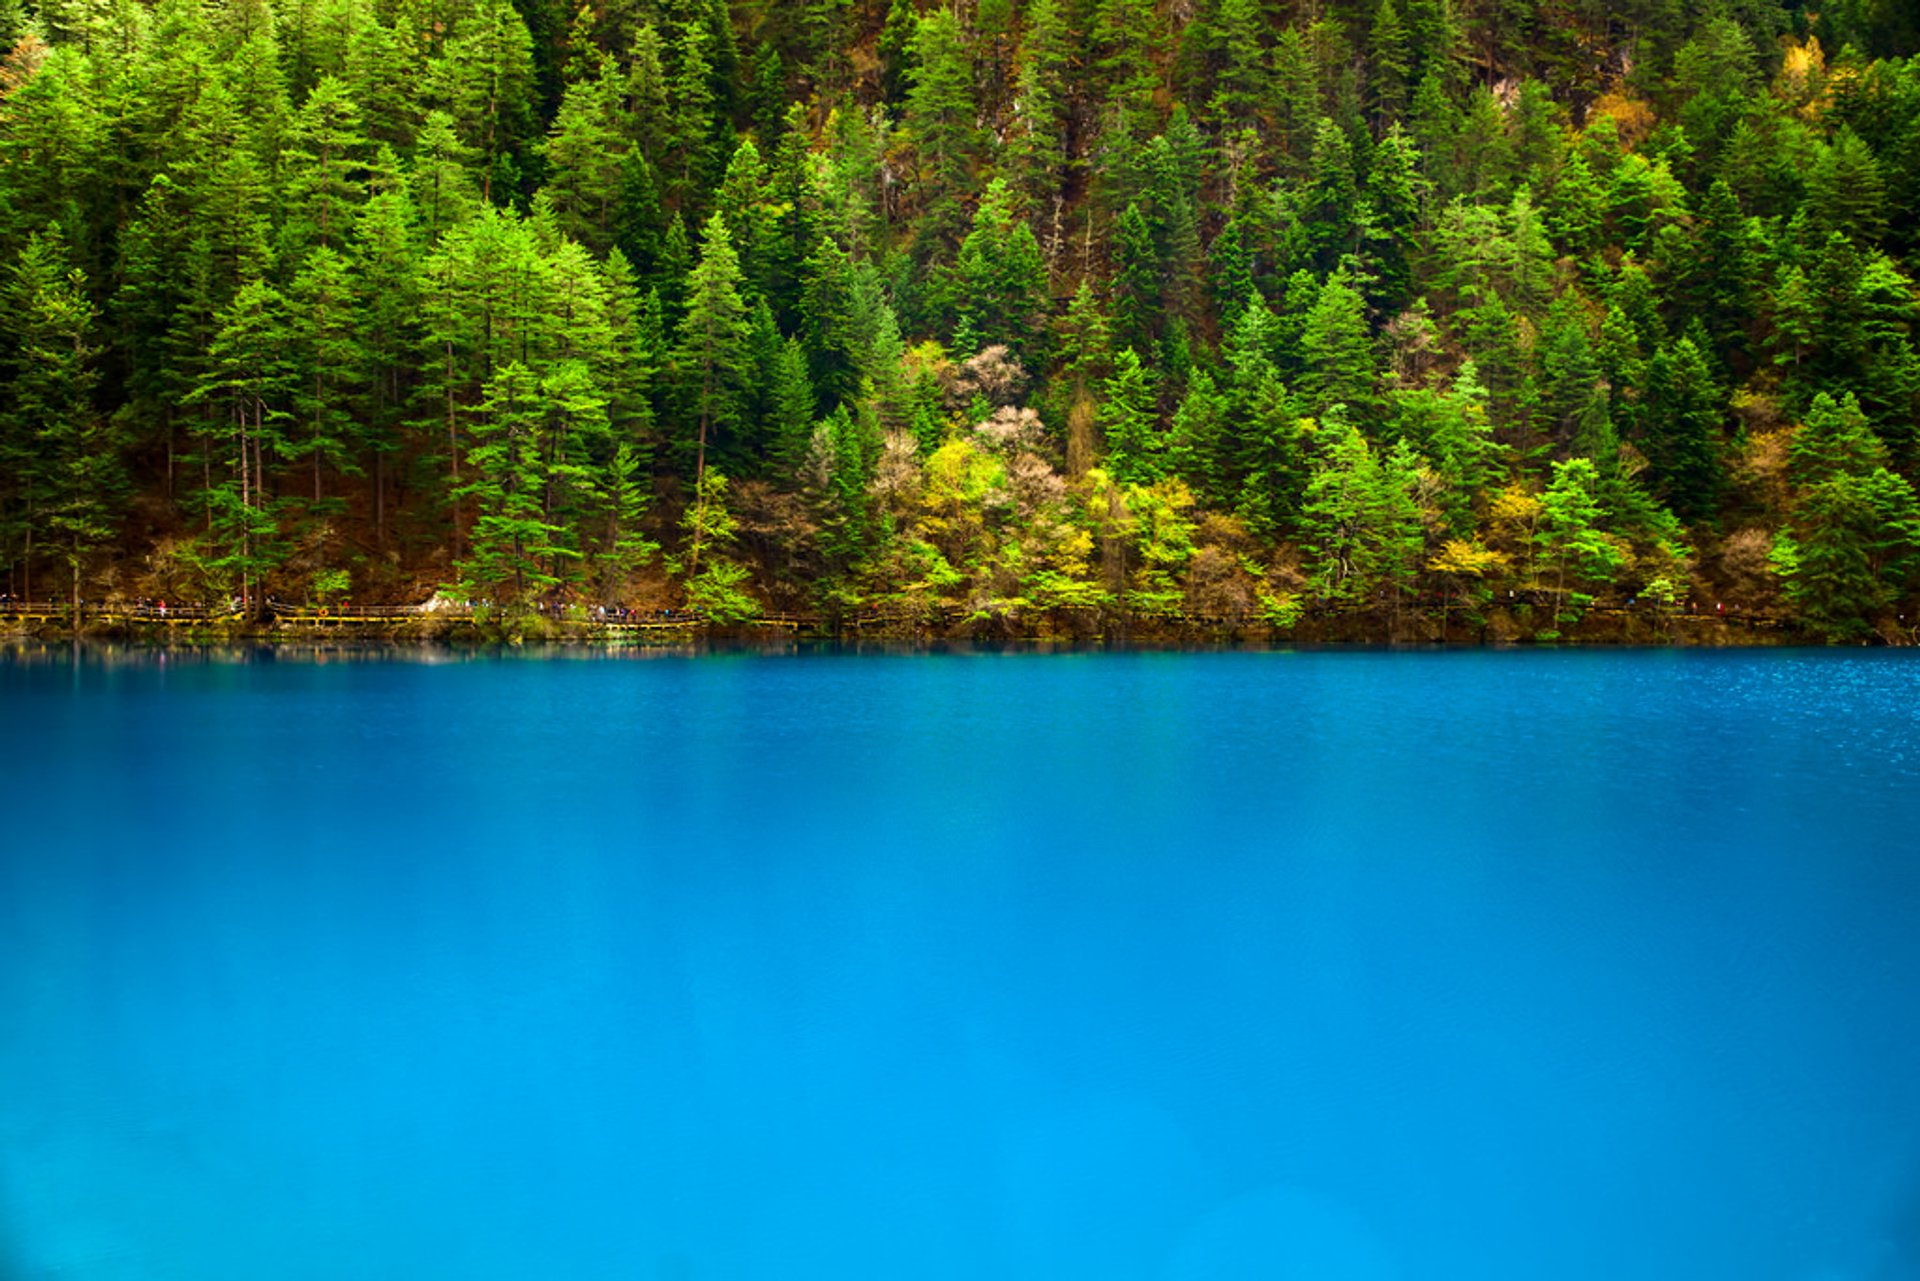 Jiuzhaigou Valley National Park in China 2020 - Best Time